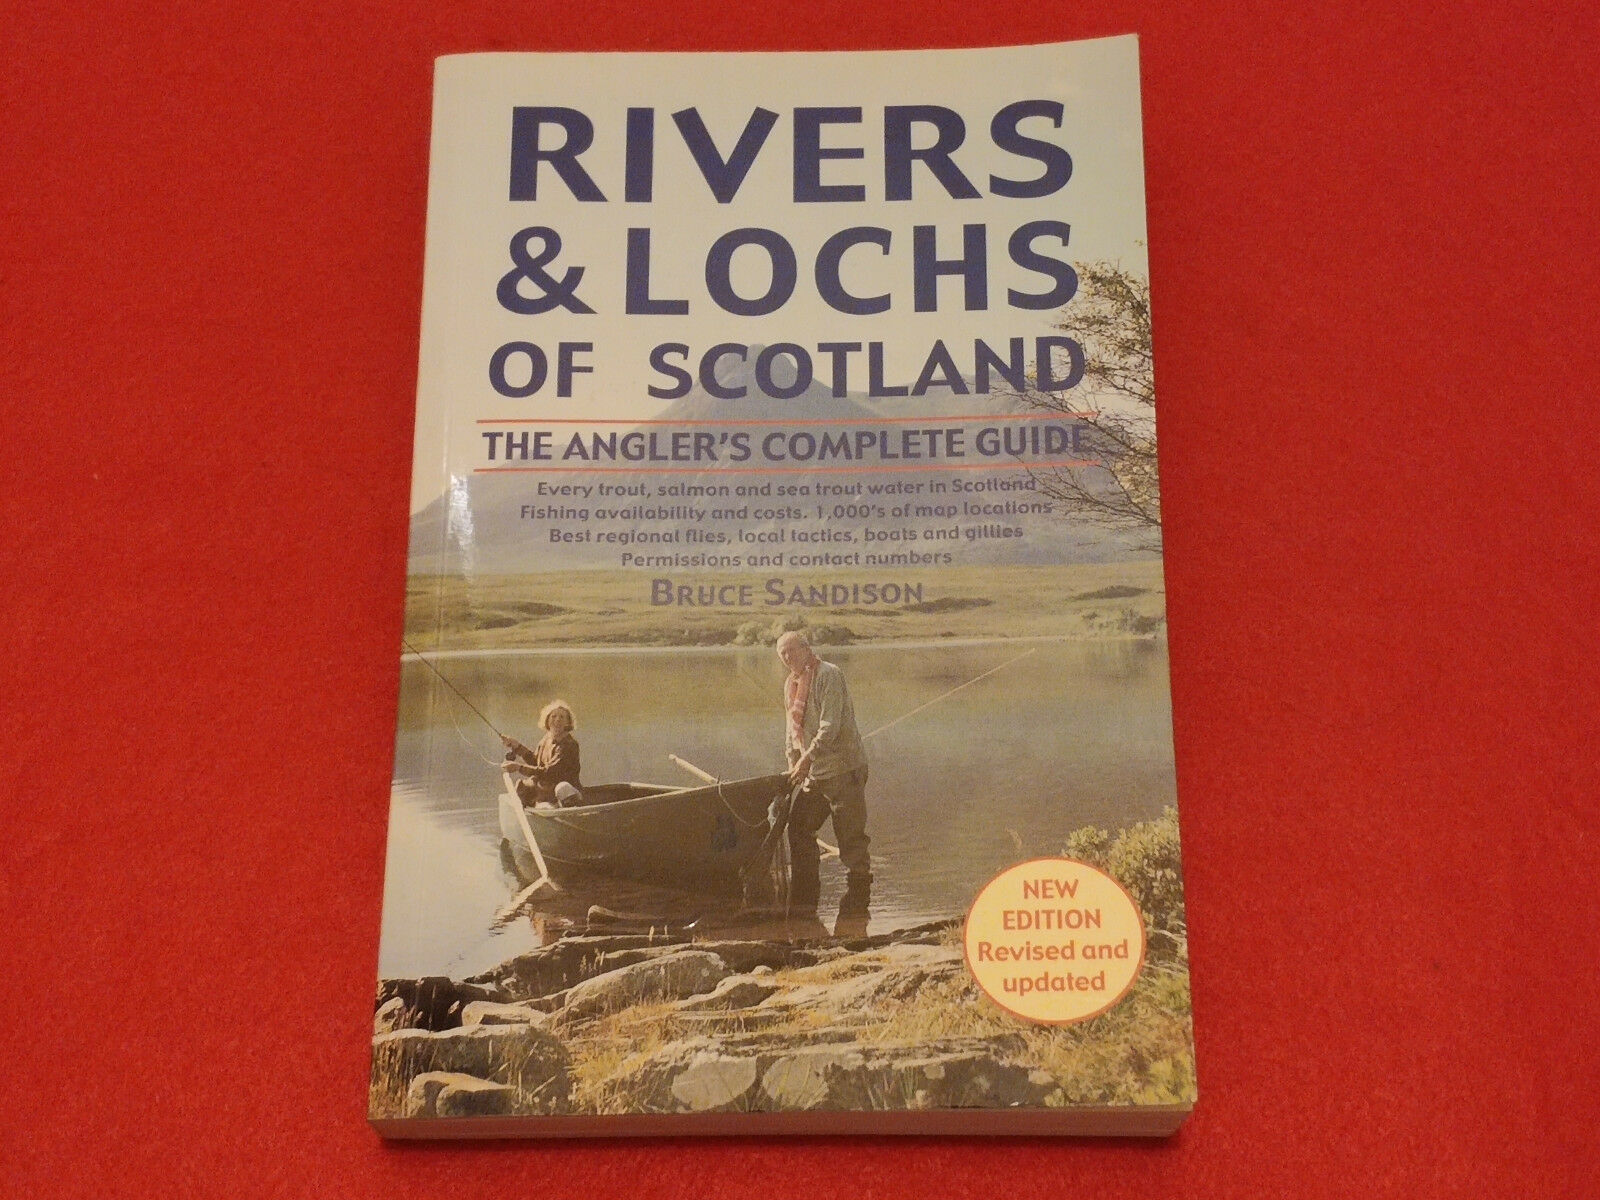 Rivers and Lochs of Scotland - The Angler's complete guide